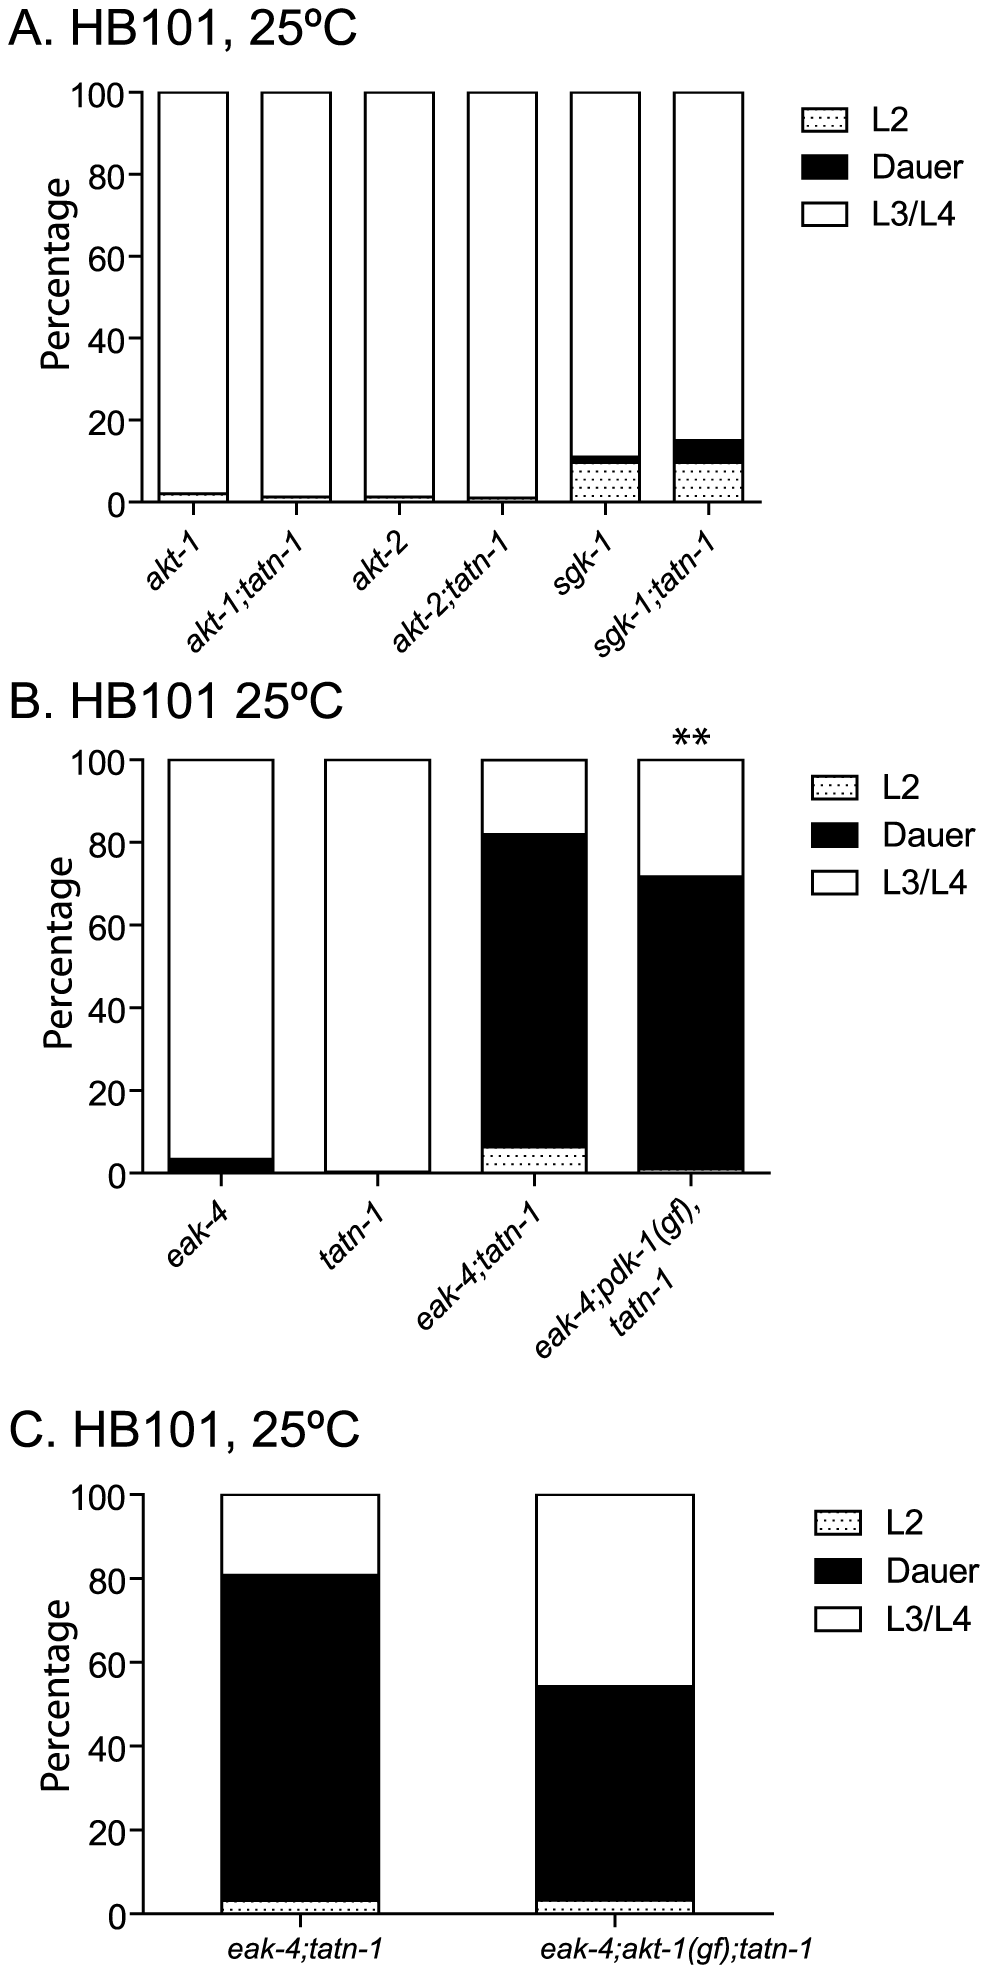 <i>tatn-1</i> effects on development do not require changes in PI3 kinase signaling.